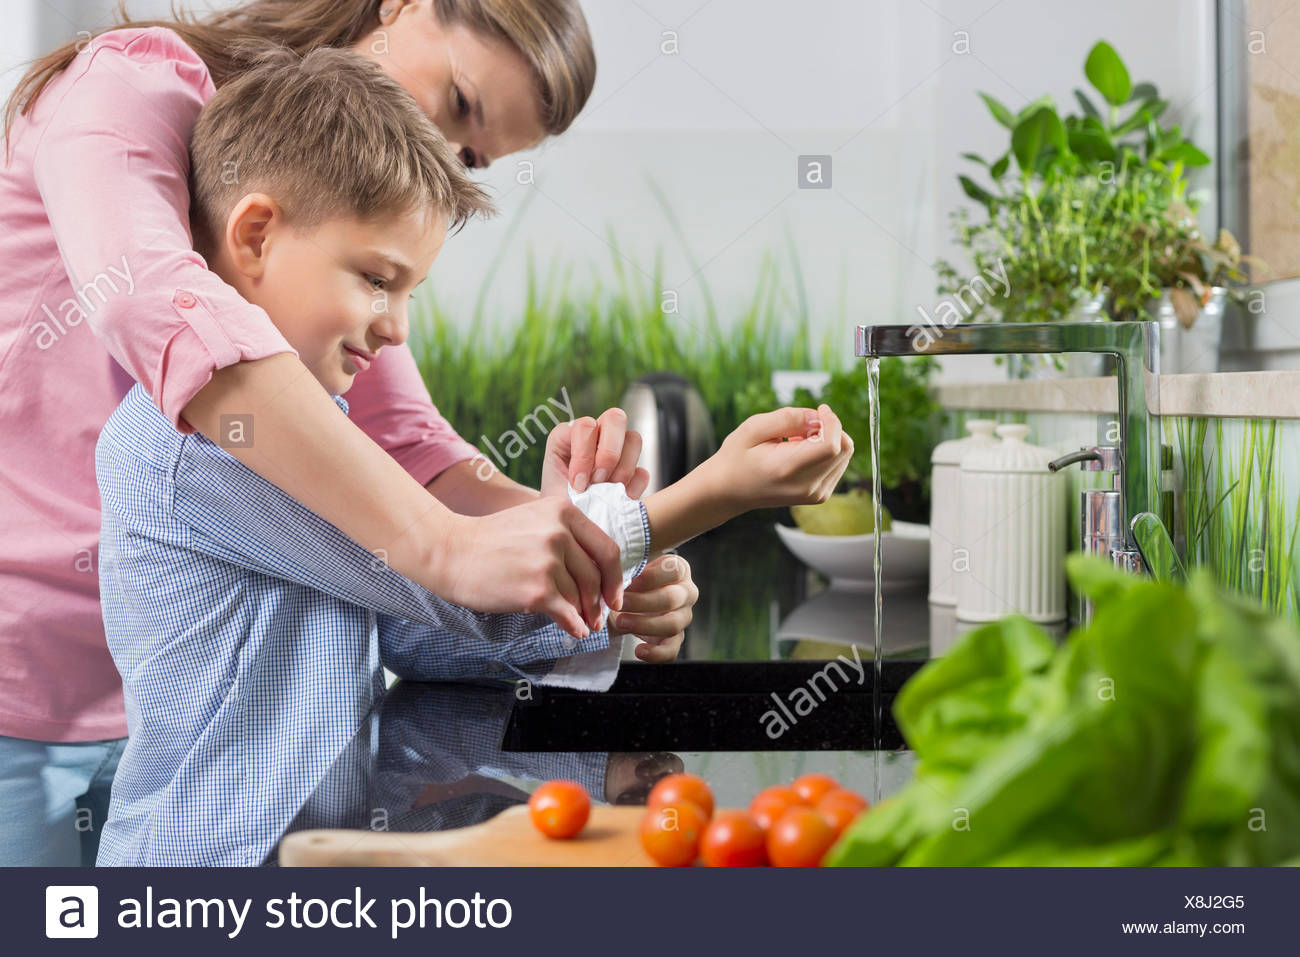 Mother assisting son in folding sleeves while washing hands in kitchen - Stock Image